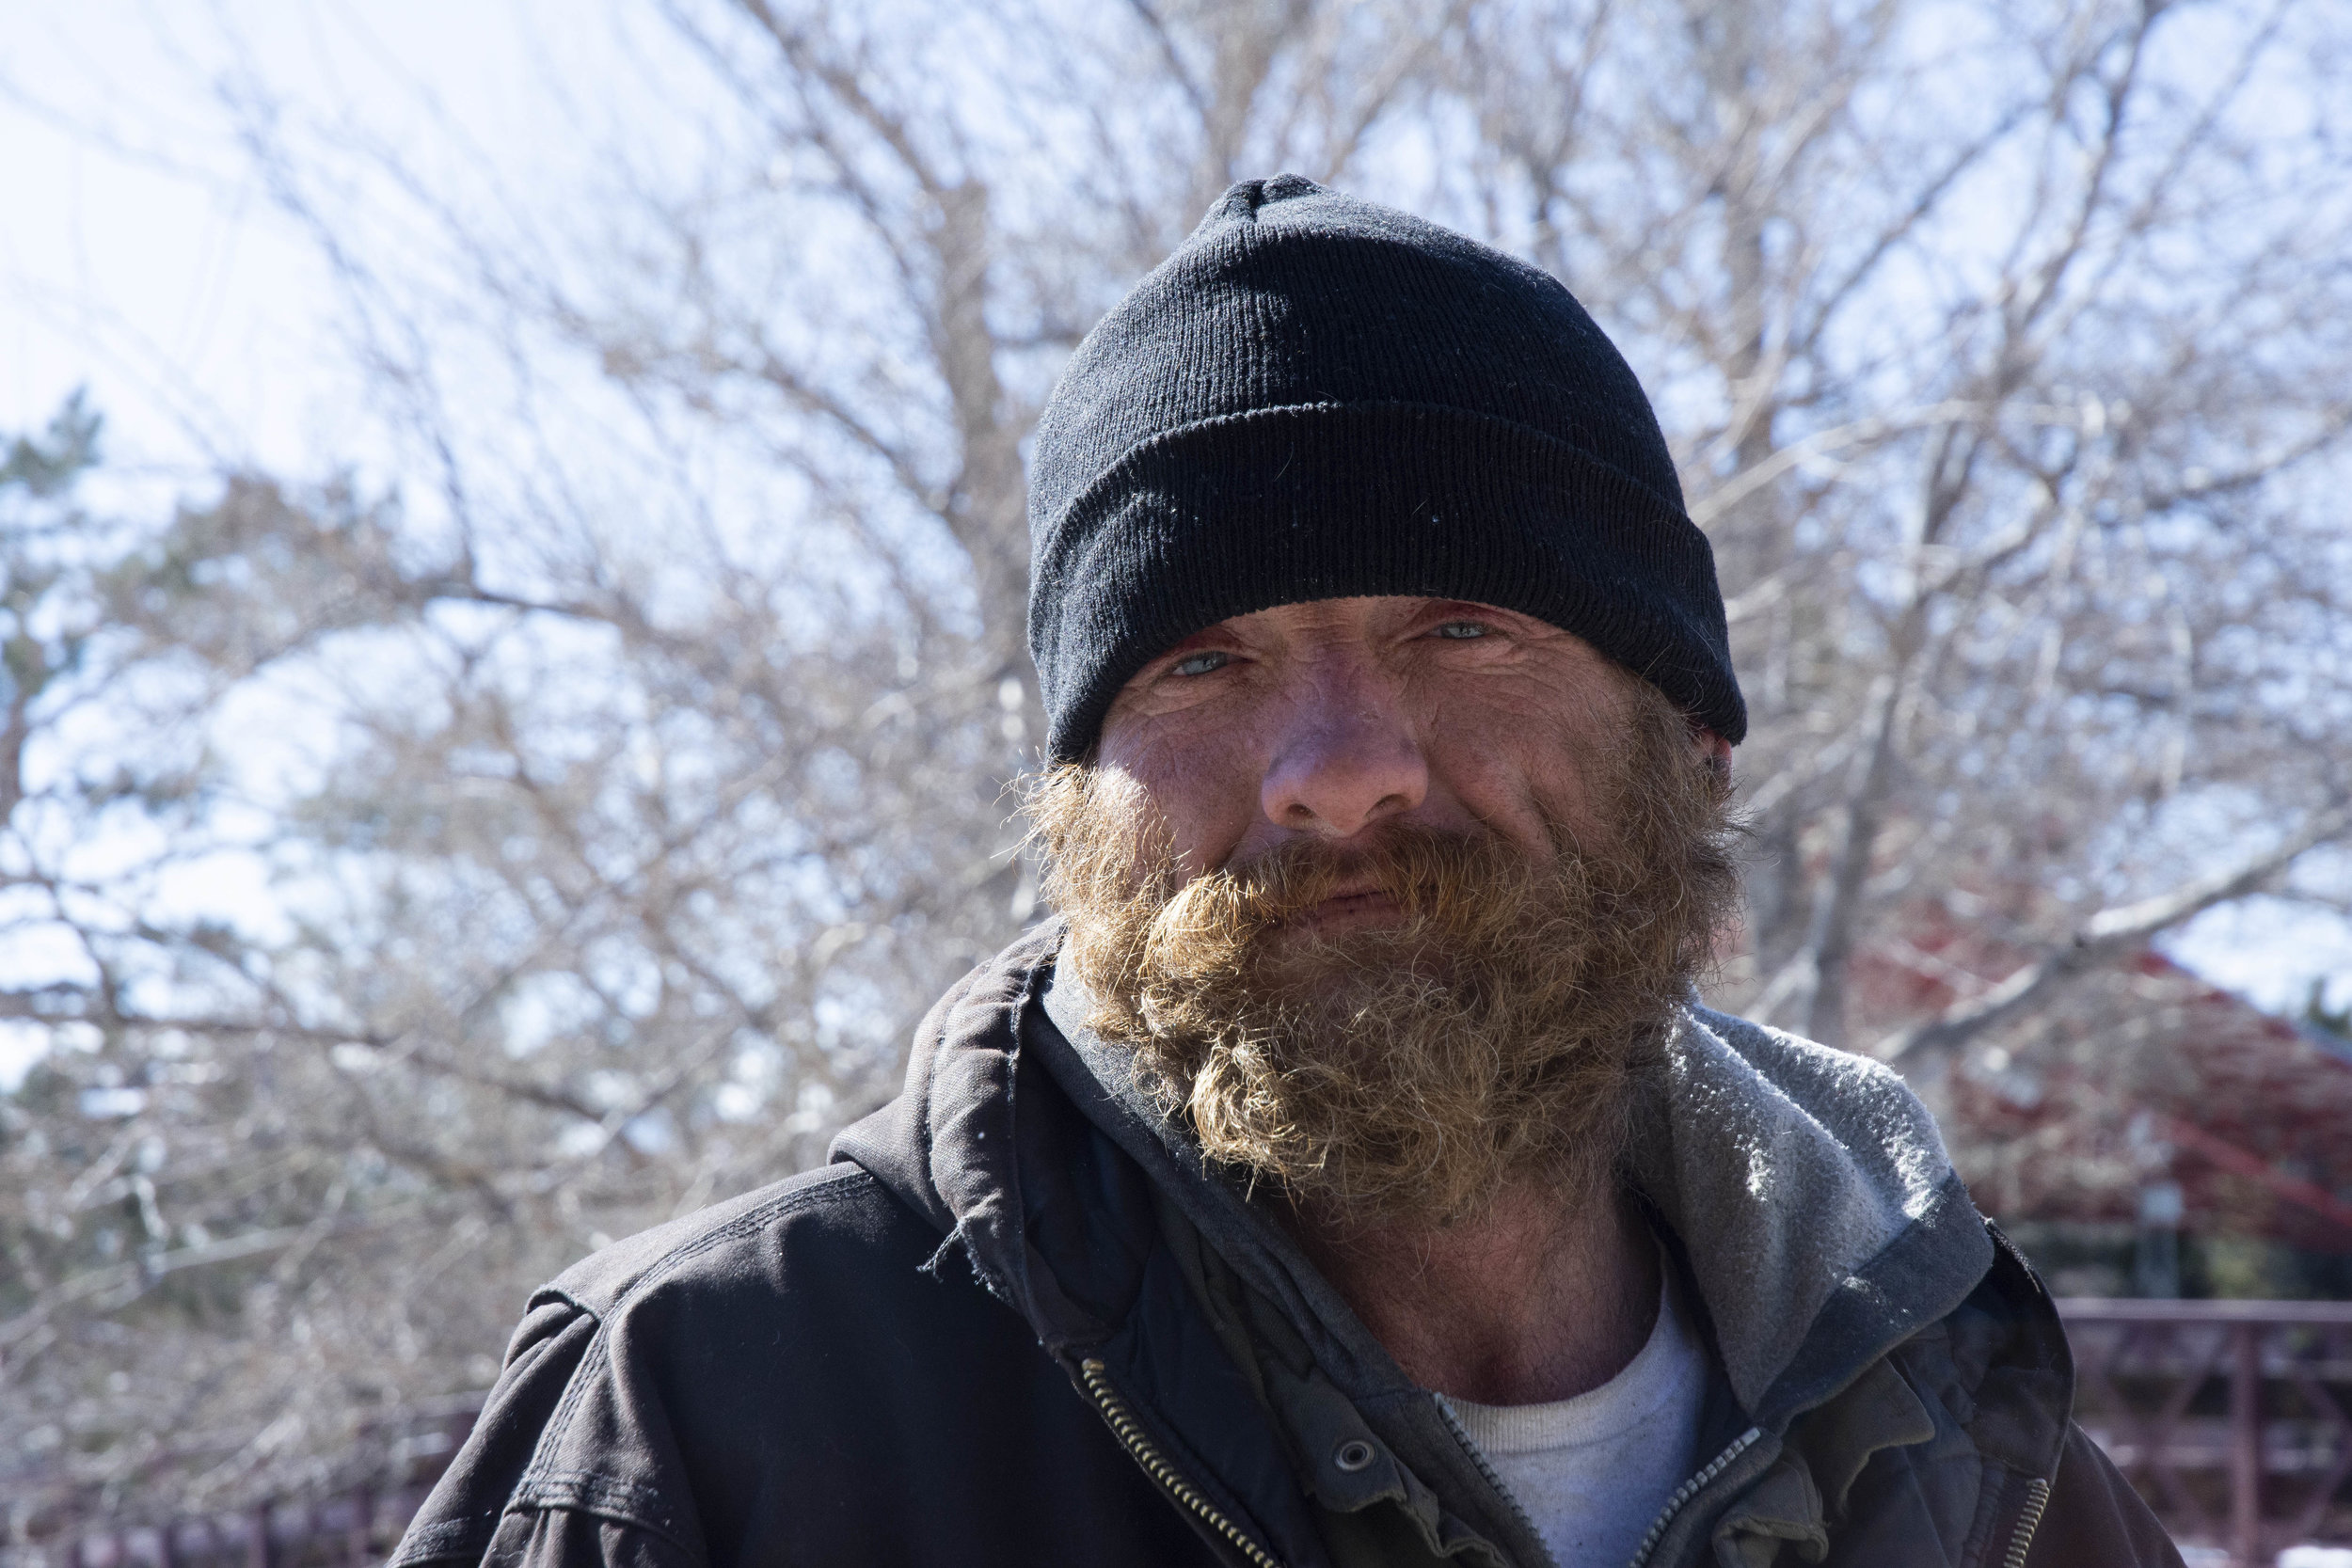 """It's kinda rough out here… You've got to be tough and you've got to be able to handle it. And a lot of people don't. I've had two friends already died this year because they can't handle it out here. It's so cold at night,""  Lee said. He says he's a former Marine who served in Afghanistan who has been living on the streets of Reno for the past six years."